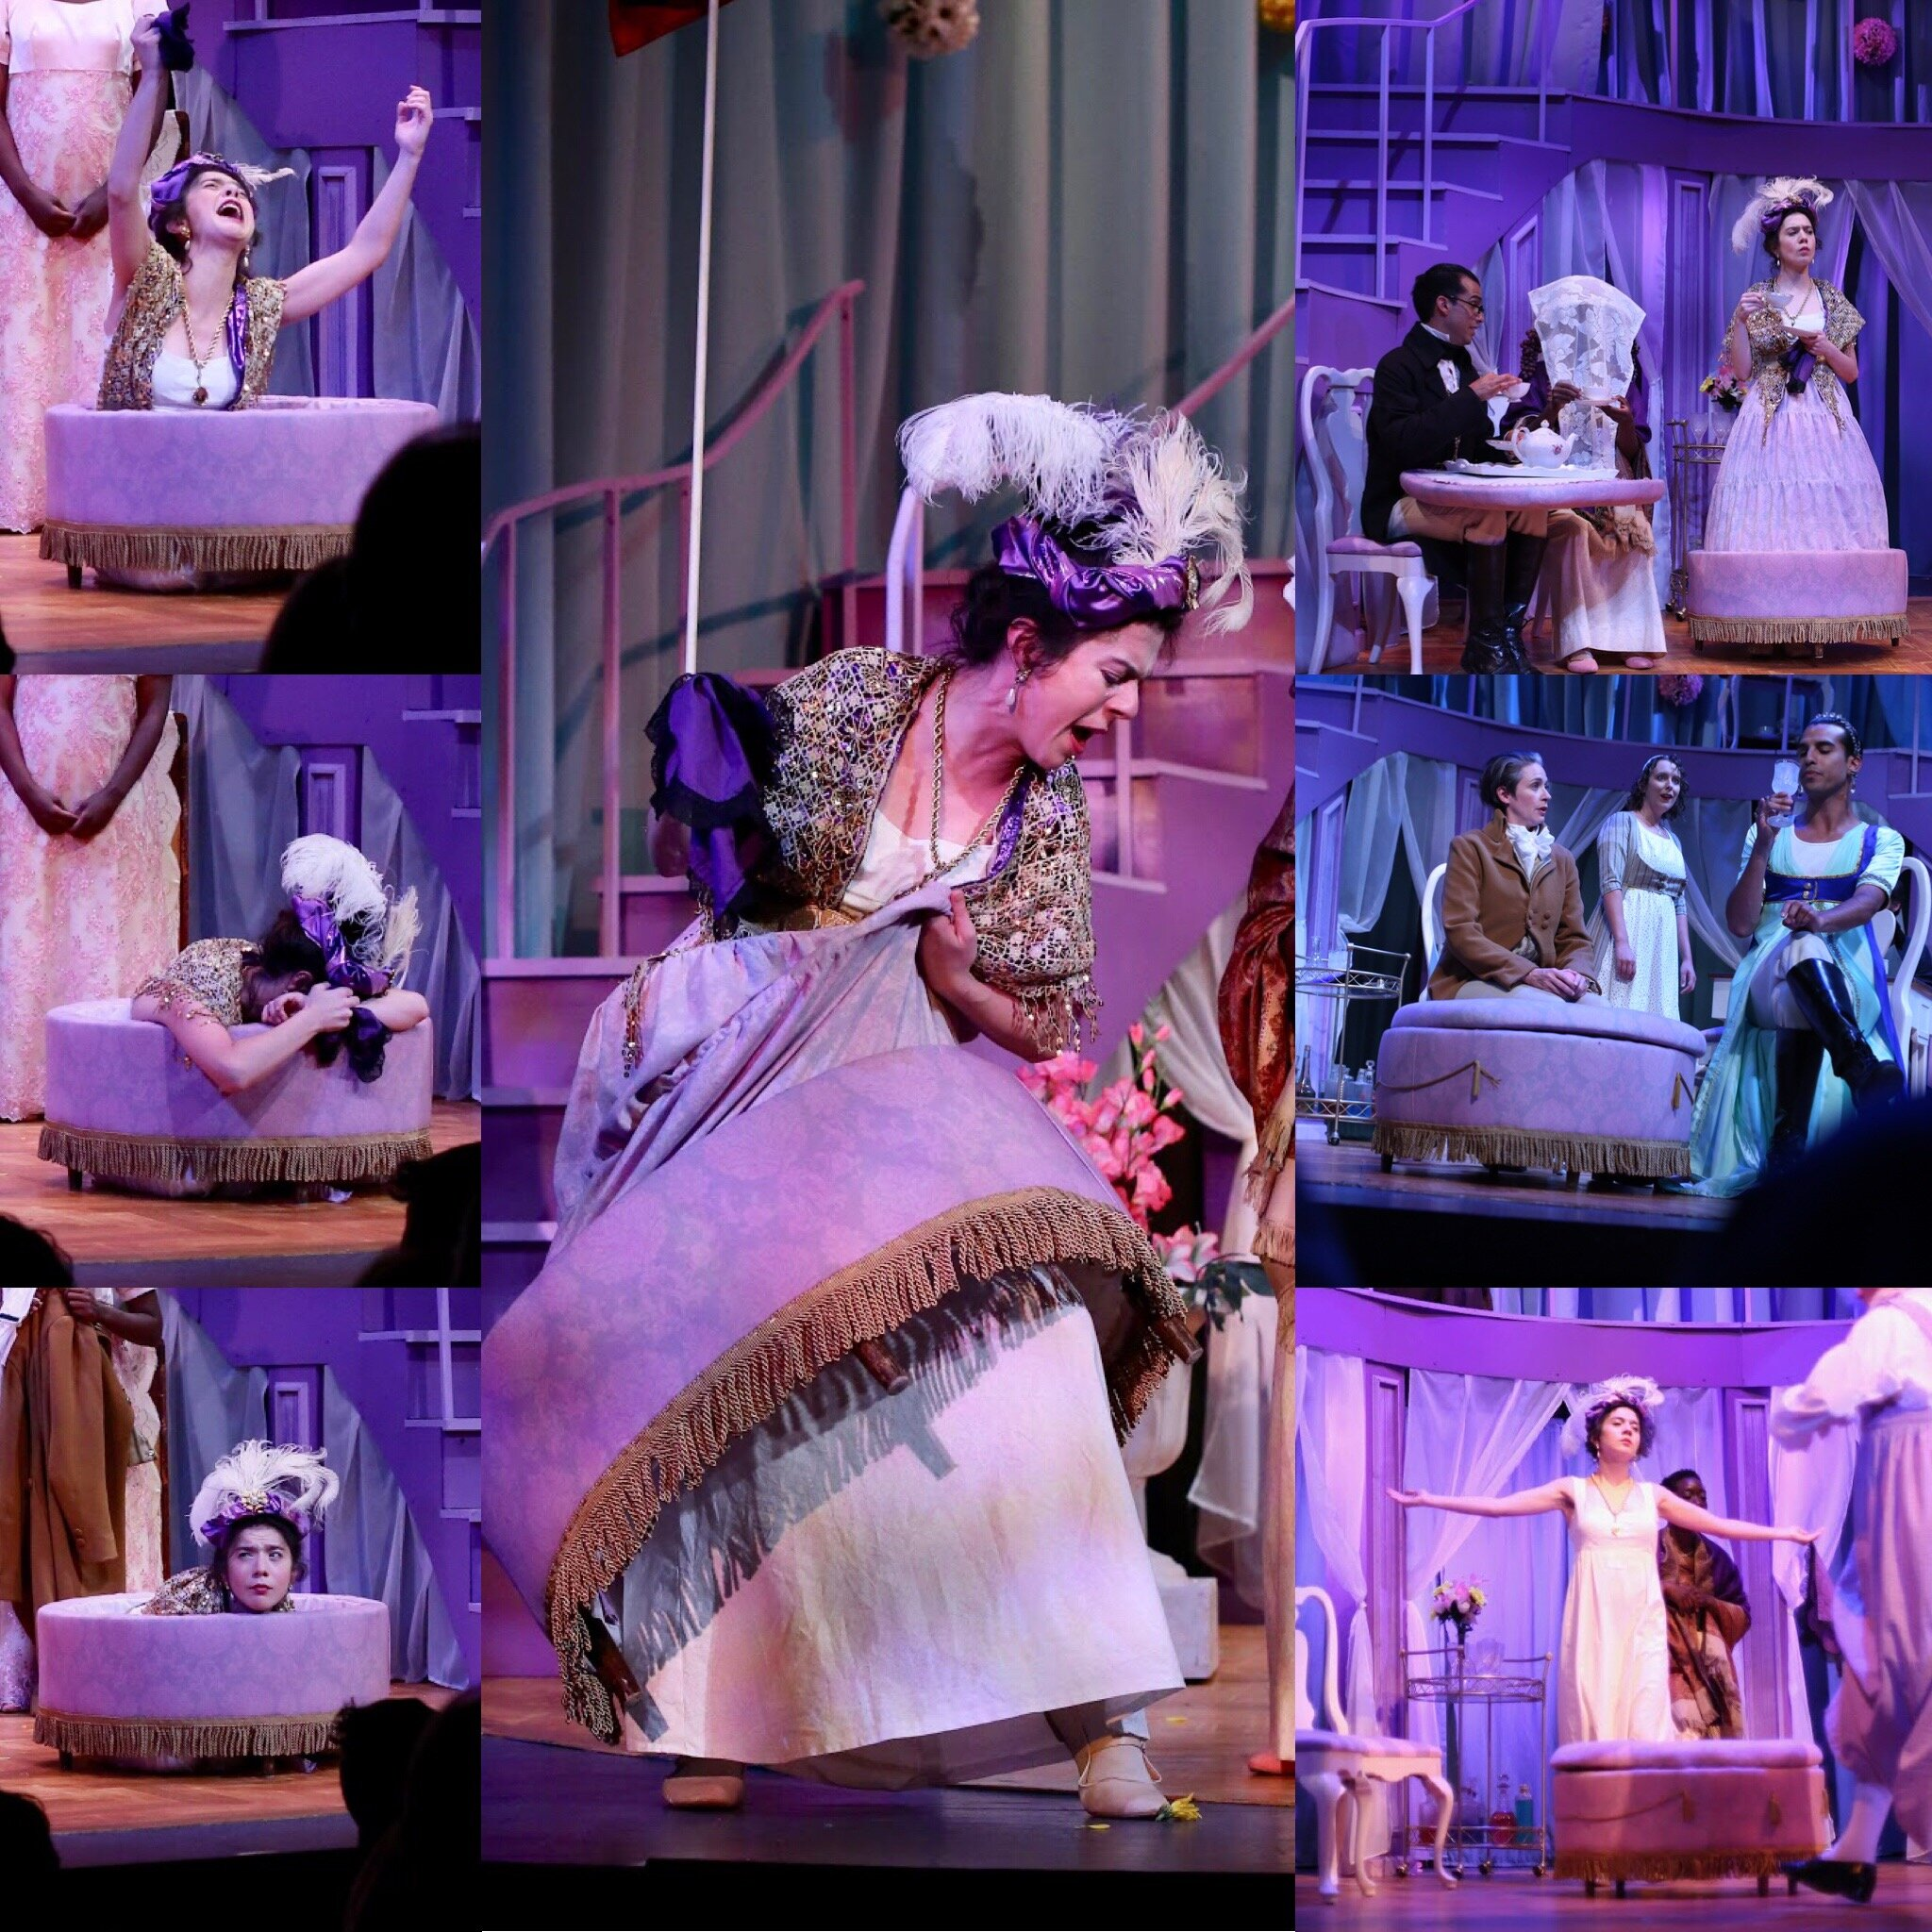 Lady Catherine de Bourgh Ottoman Dress- Pride and Prejudice-  Creede Repertory Theatre 2019  Costume Design by Amy Sutton. All other designs by the seasonal staff of CRT. Show Photos Courtesy of John Gary Brown.